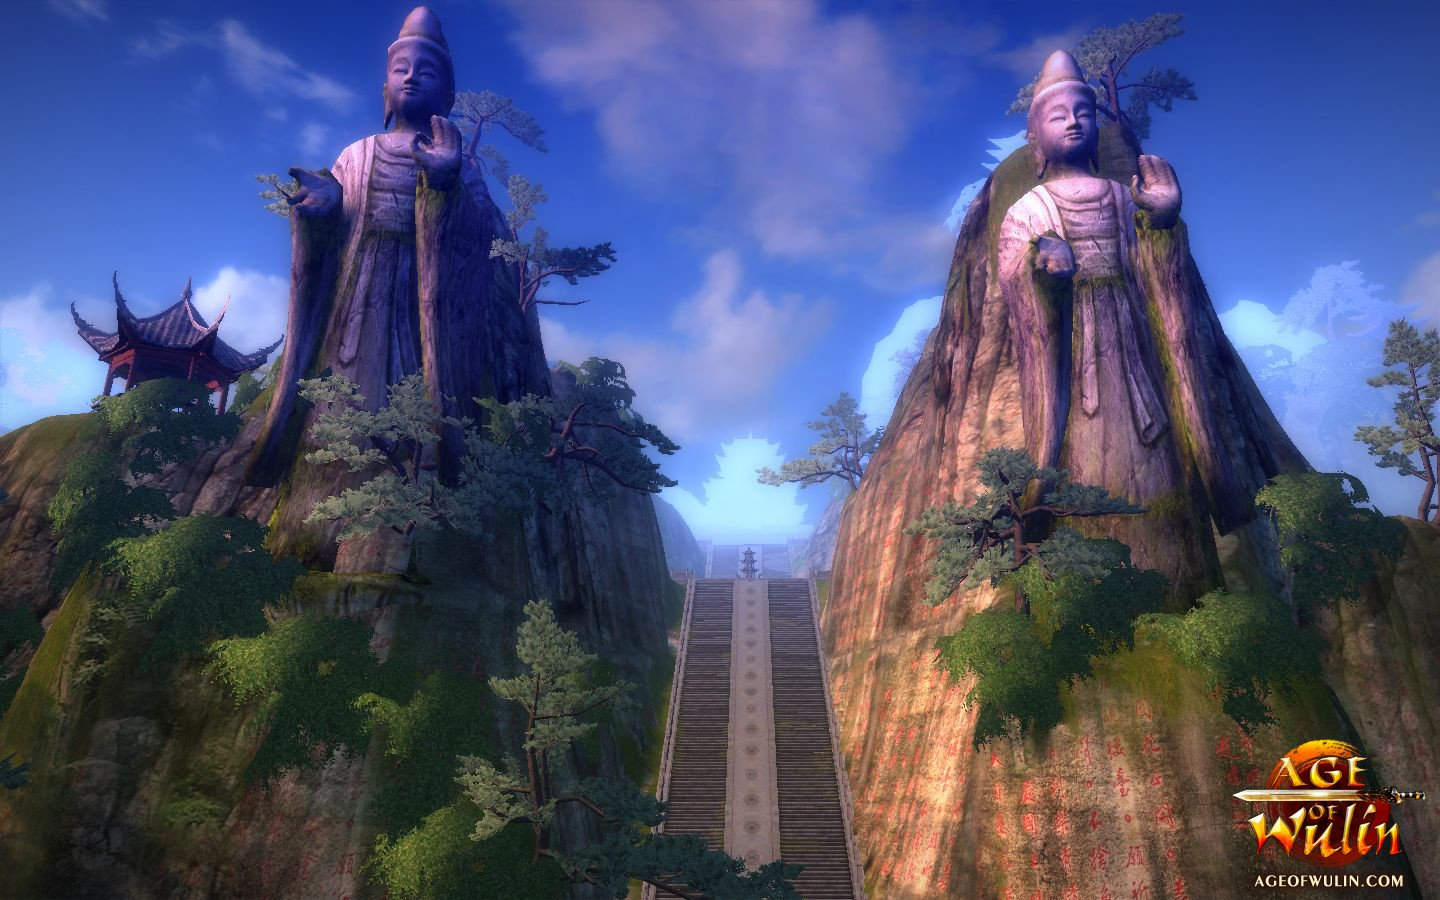 shaolin temple wallpaper - photo #7